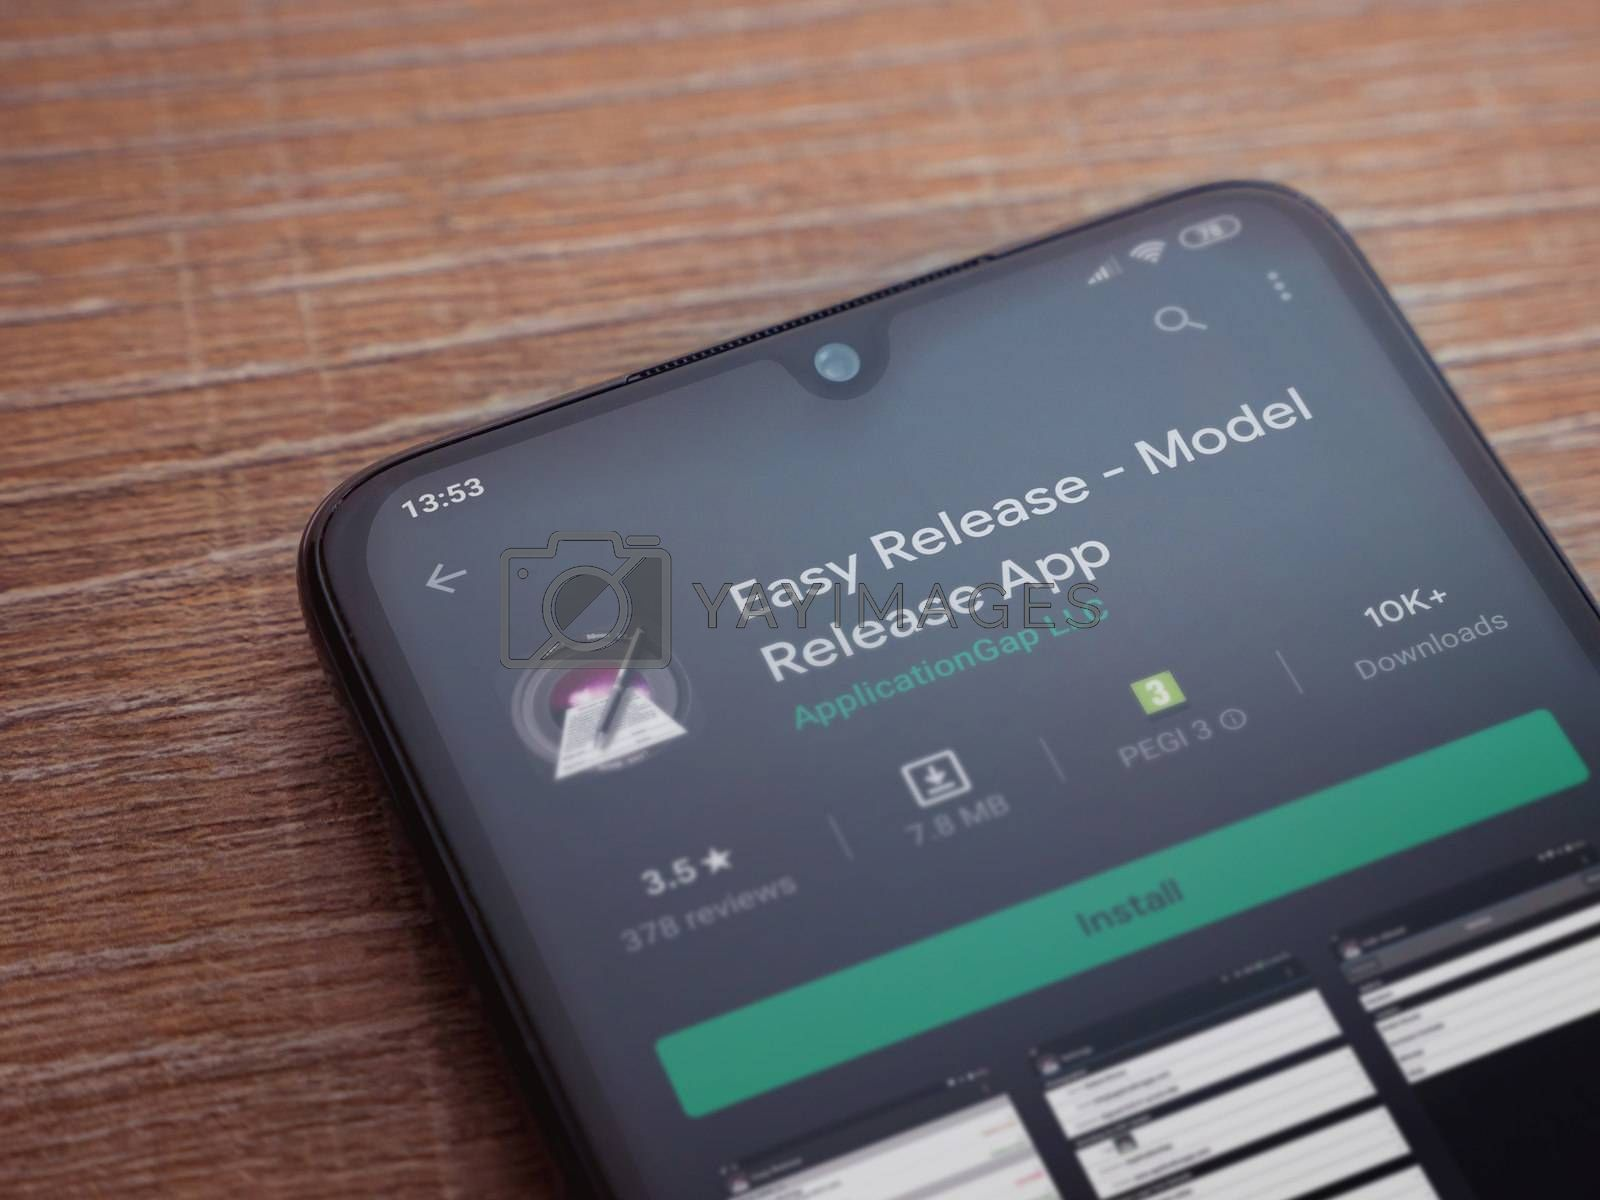 Easy Release Pro - Model Release app play store page on the disp by wavemovies